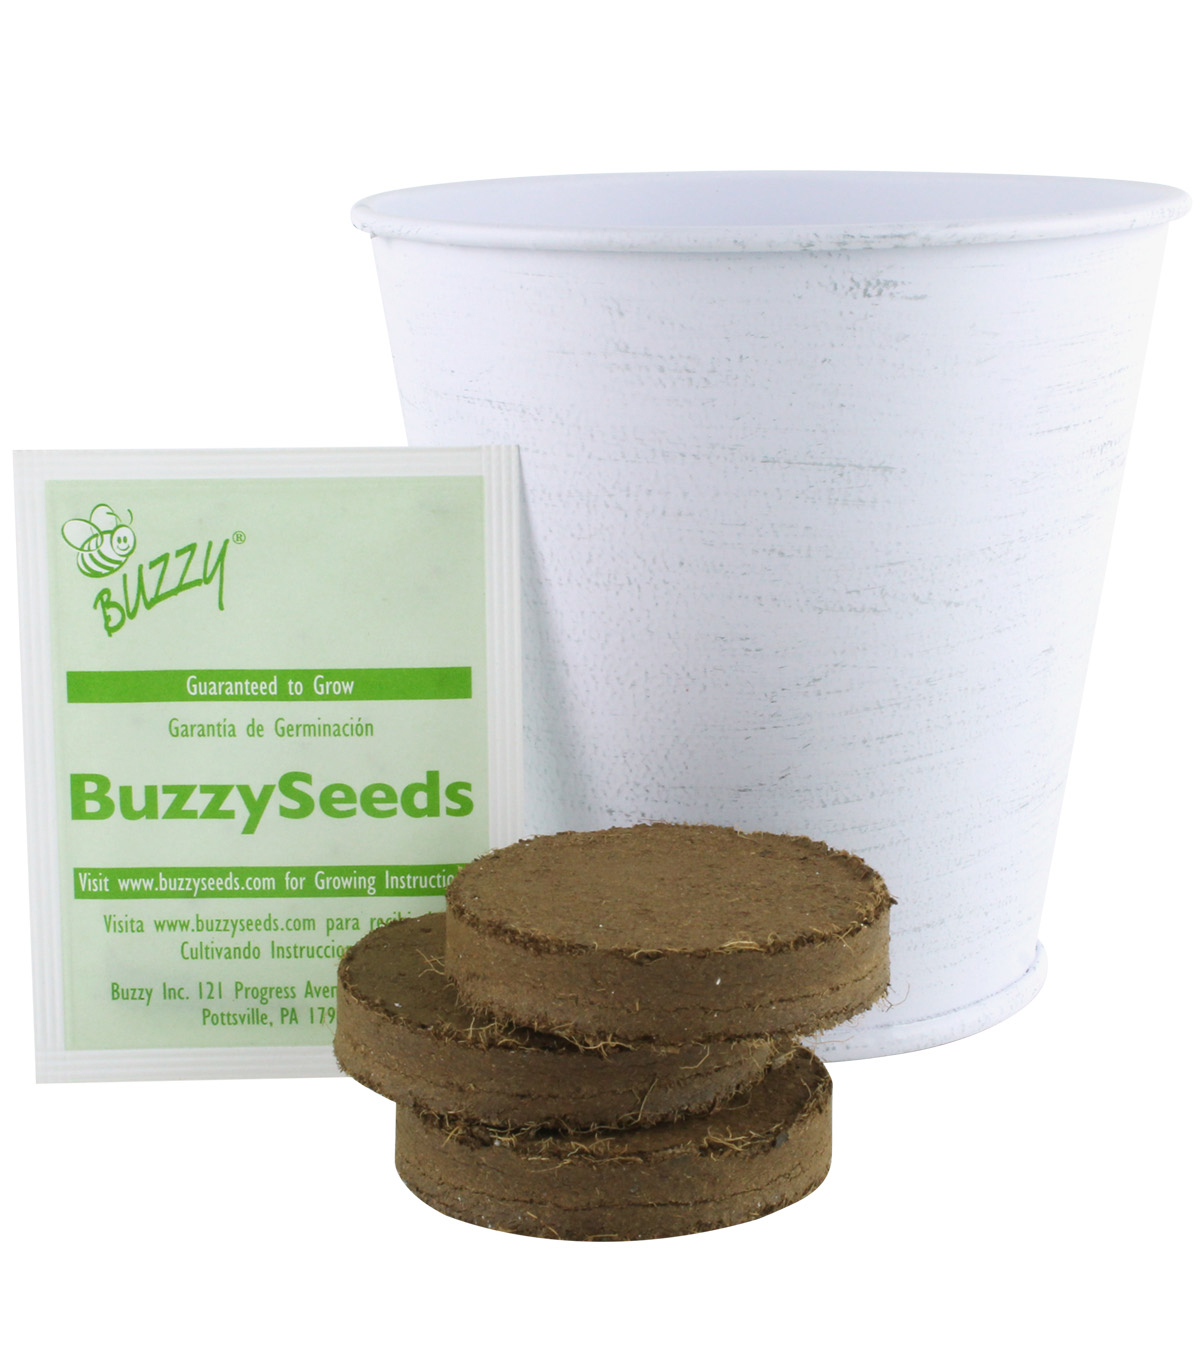 Buzzy Zinnia DIY Grow Kit with Whitewashed Metal Pail